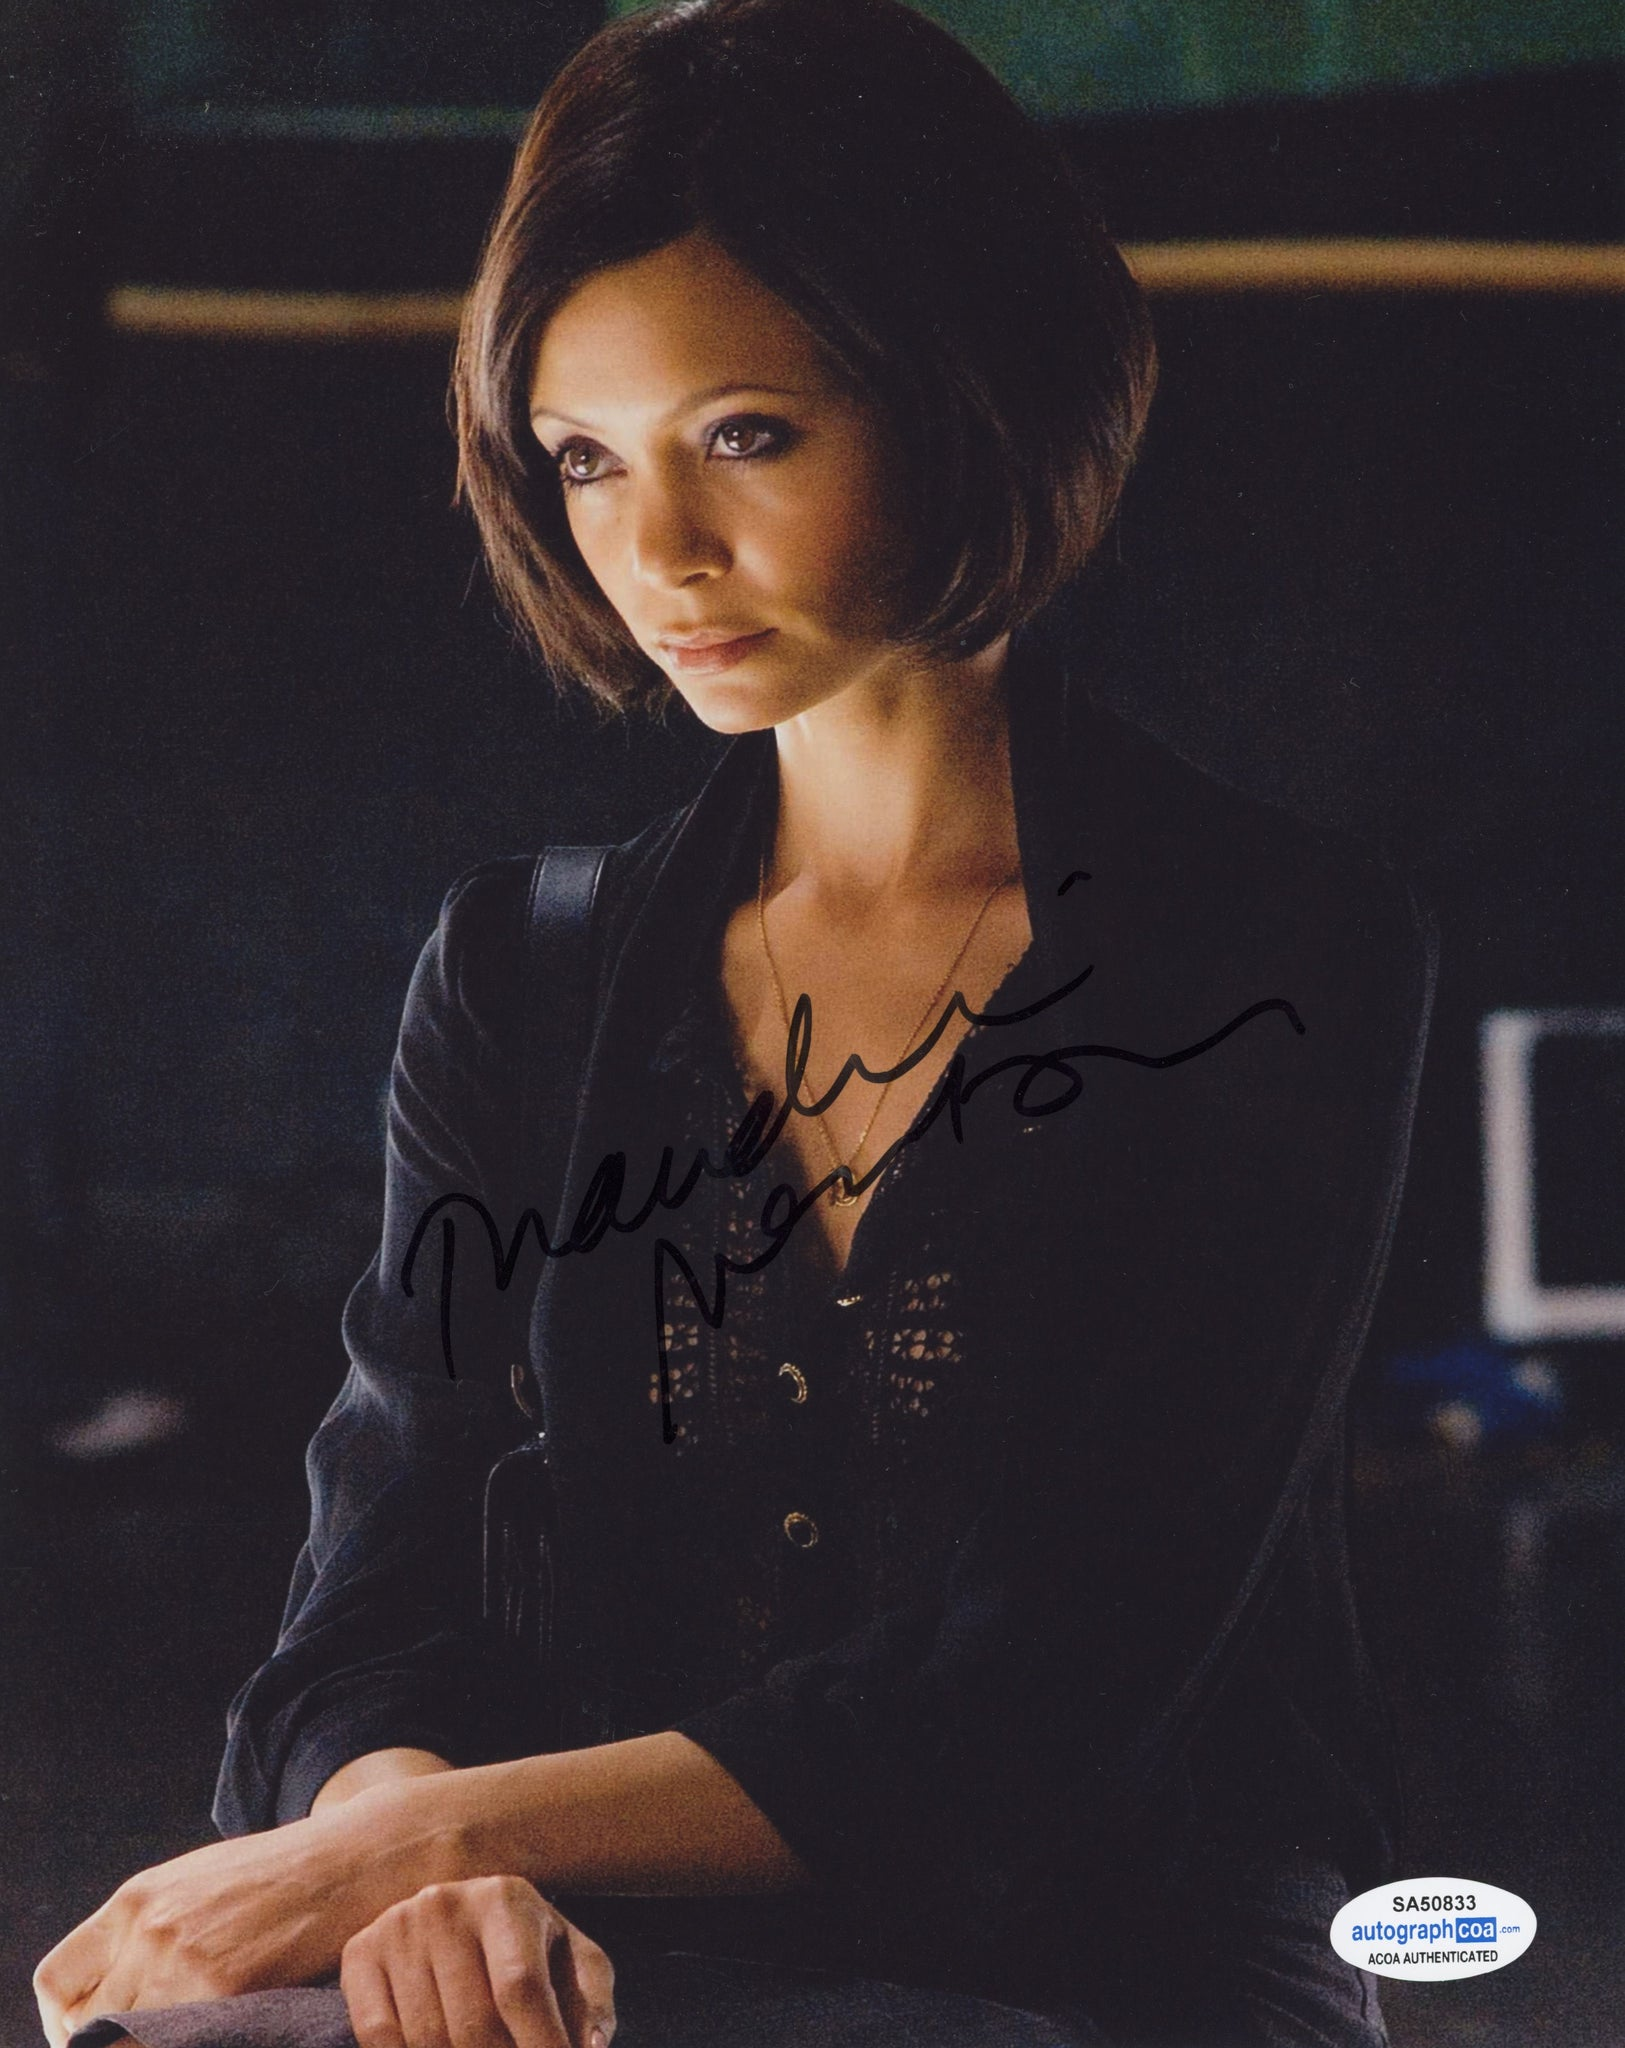 Thandie Newton RockNRolla Signed Autograph 8x10 Photo ACOA